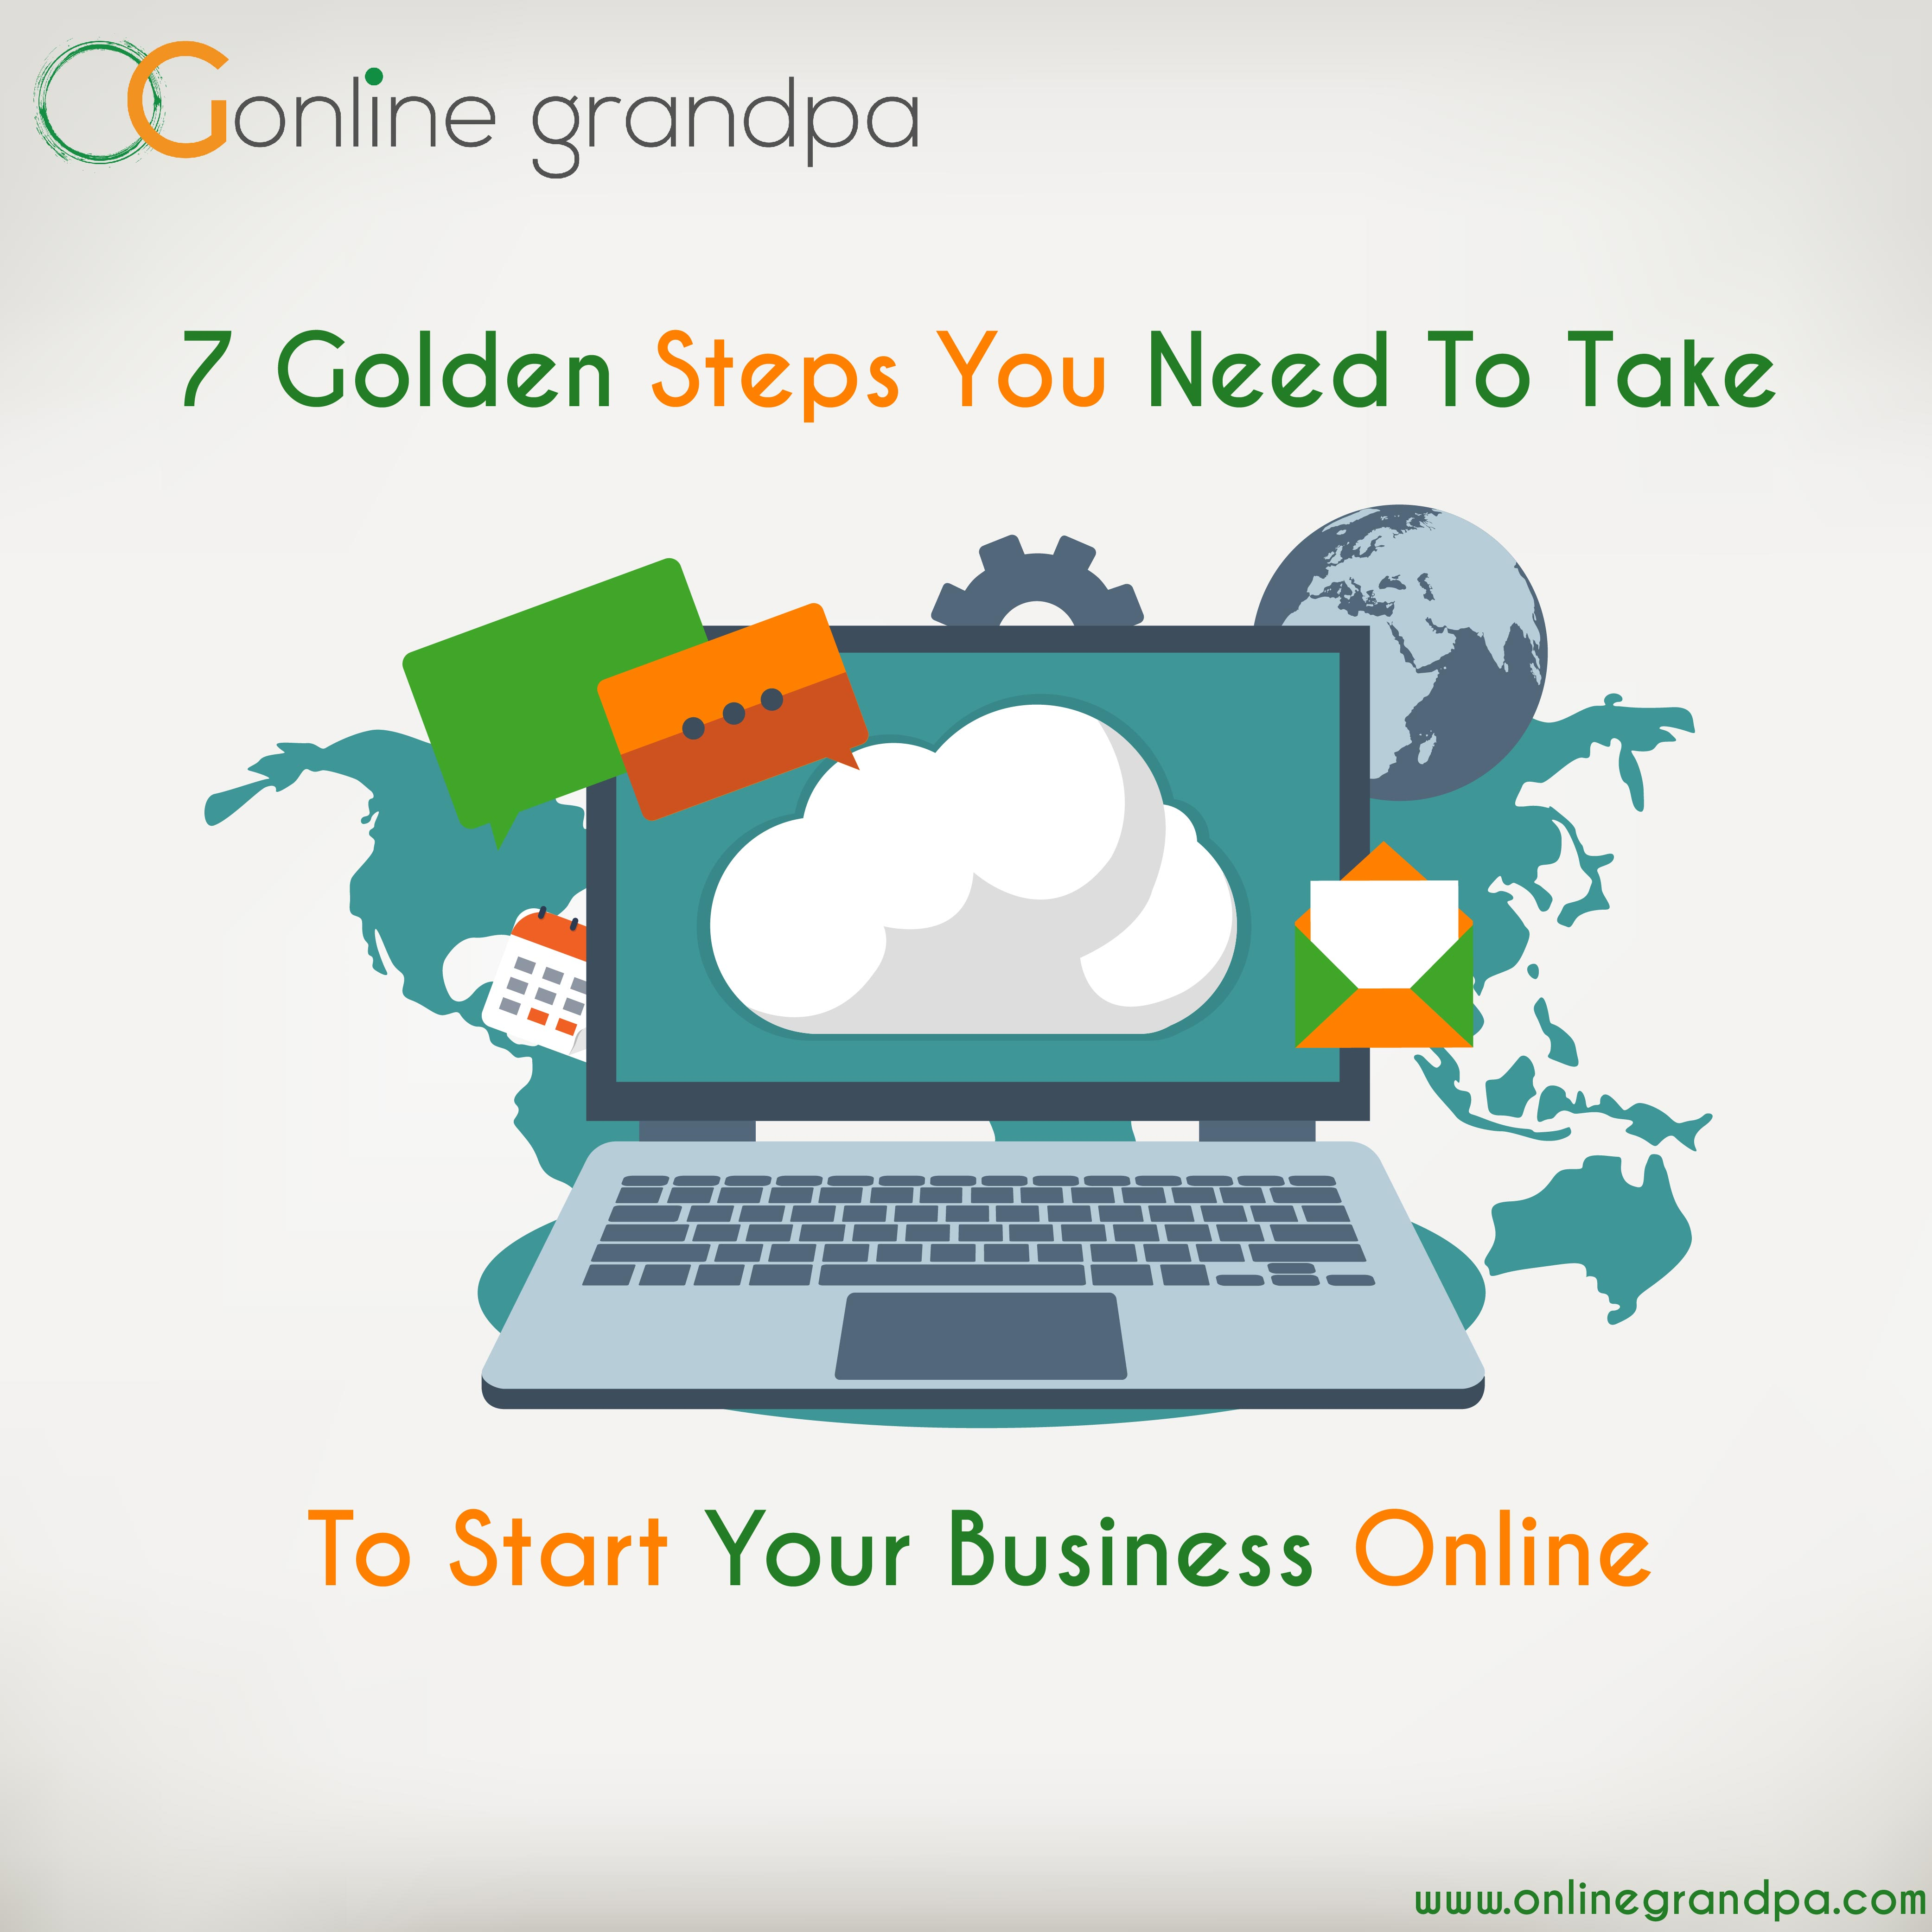 7 Golden Steps You Need To Take To Start Your Business Online